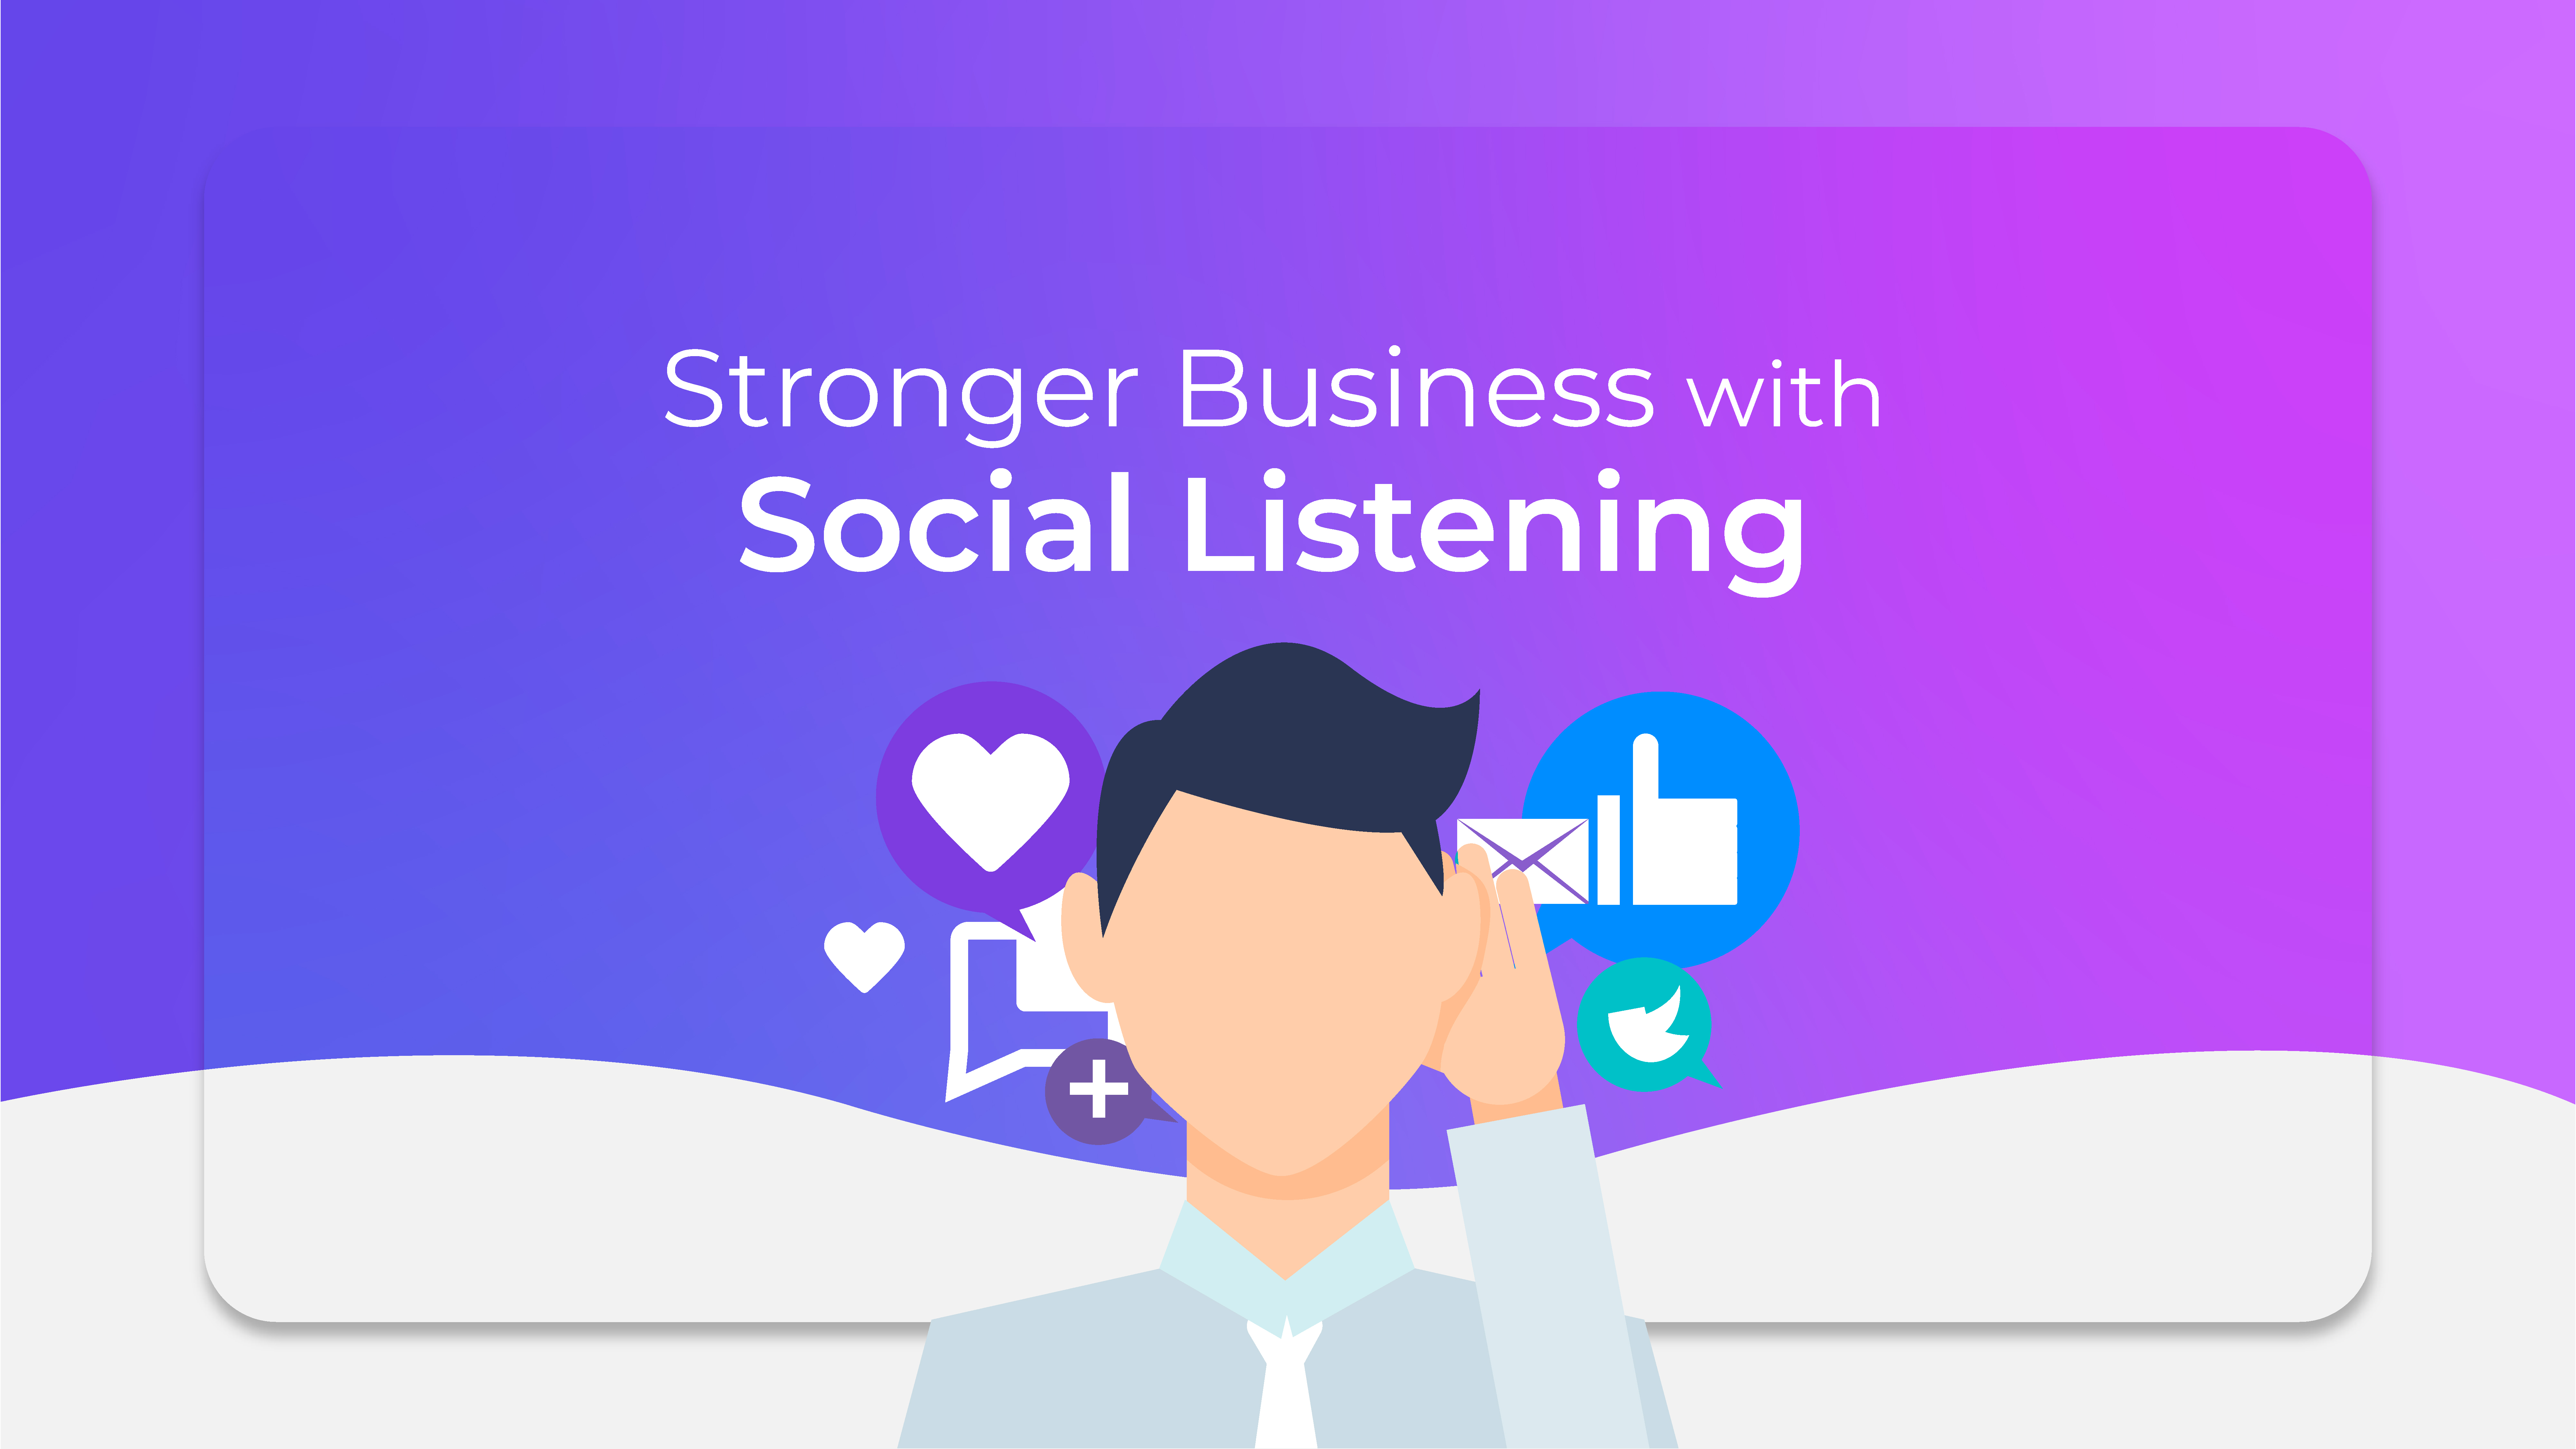 How to Build A Stronger Business with Social Listening